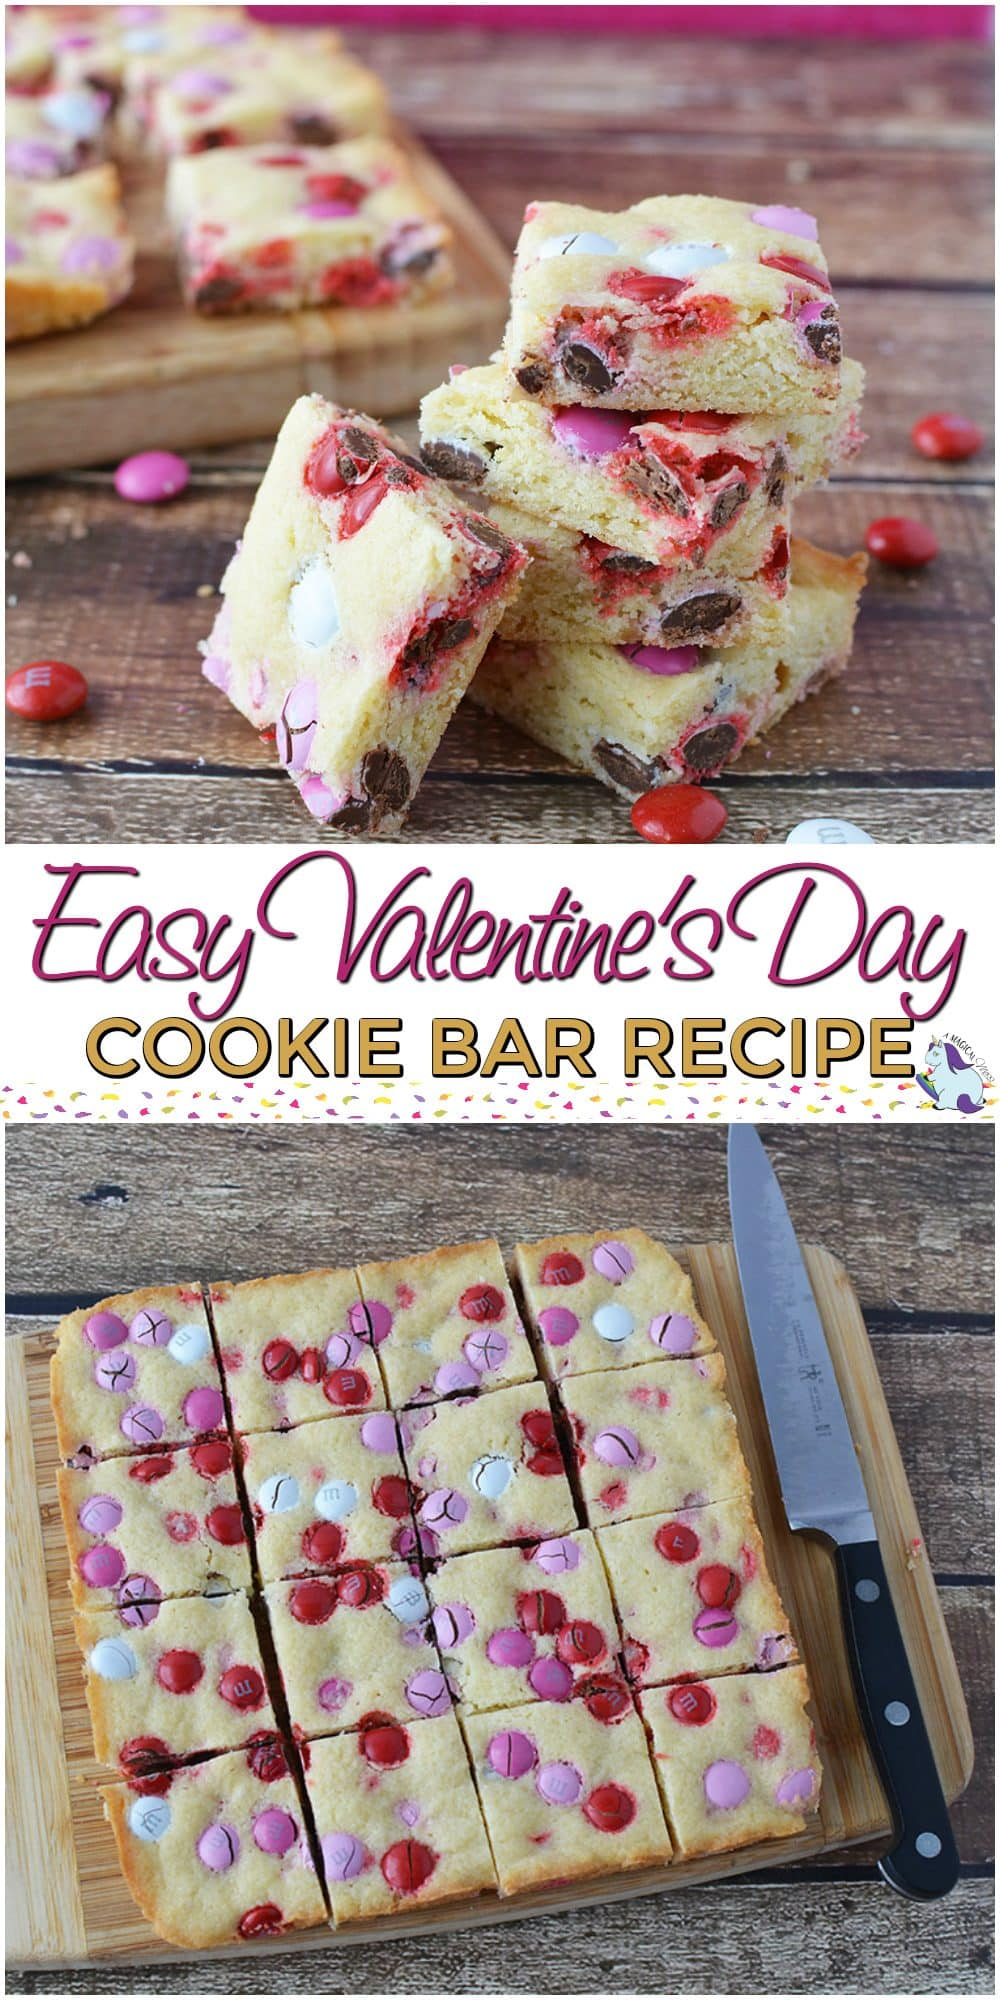 Cookie Bar Recipe for Valentine's Day